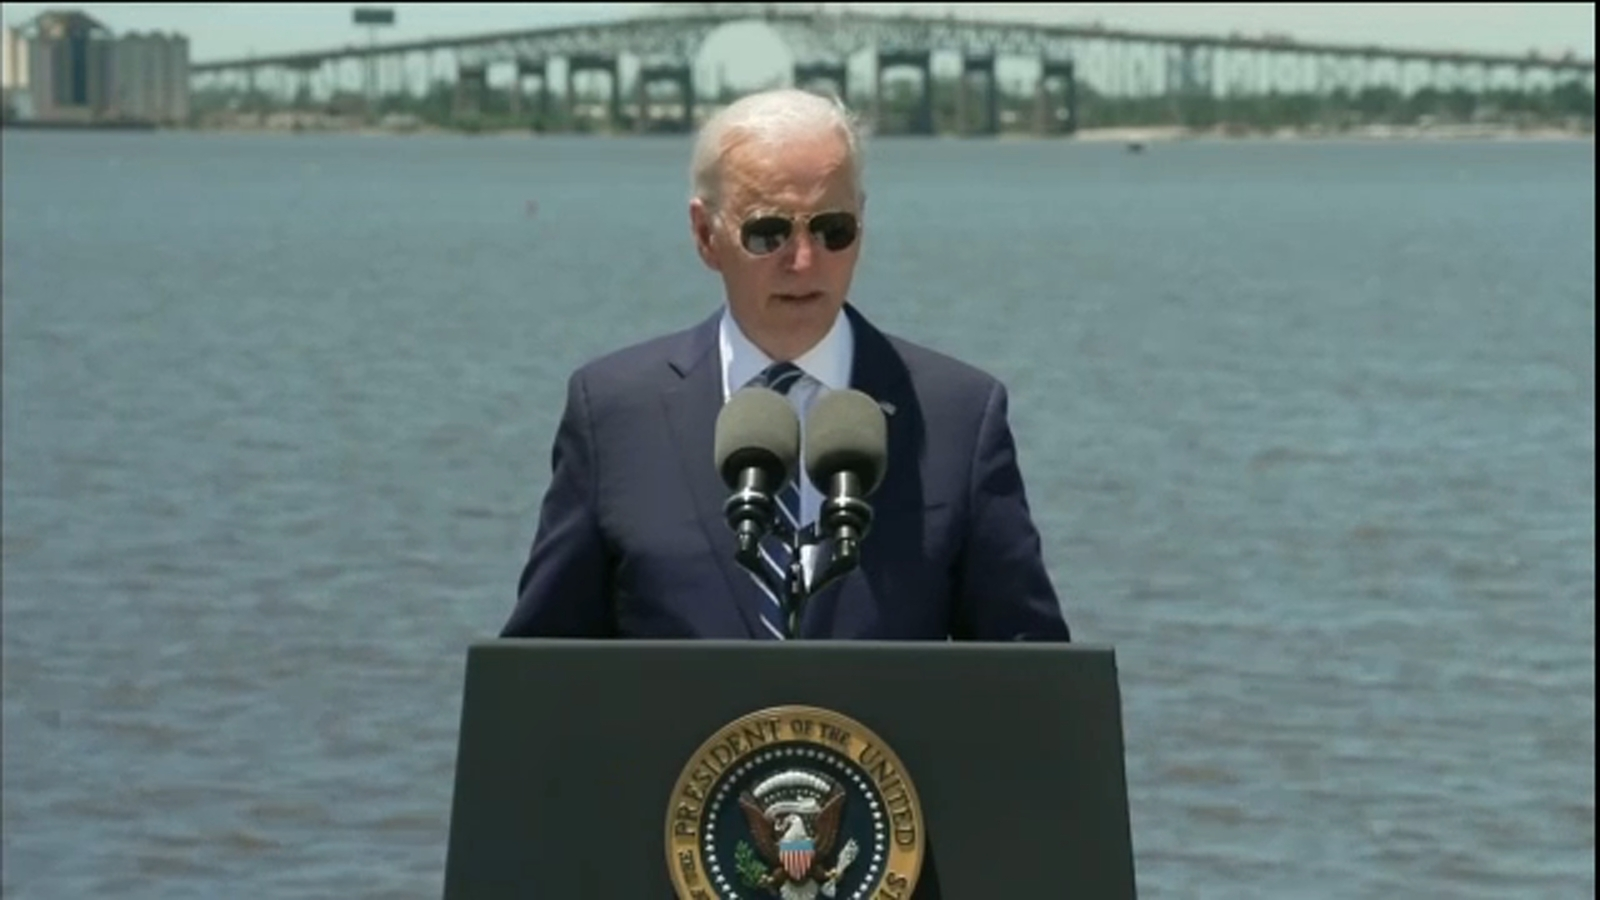 Biden touts big infrastructure plan in GOP stronghold of Louisiana